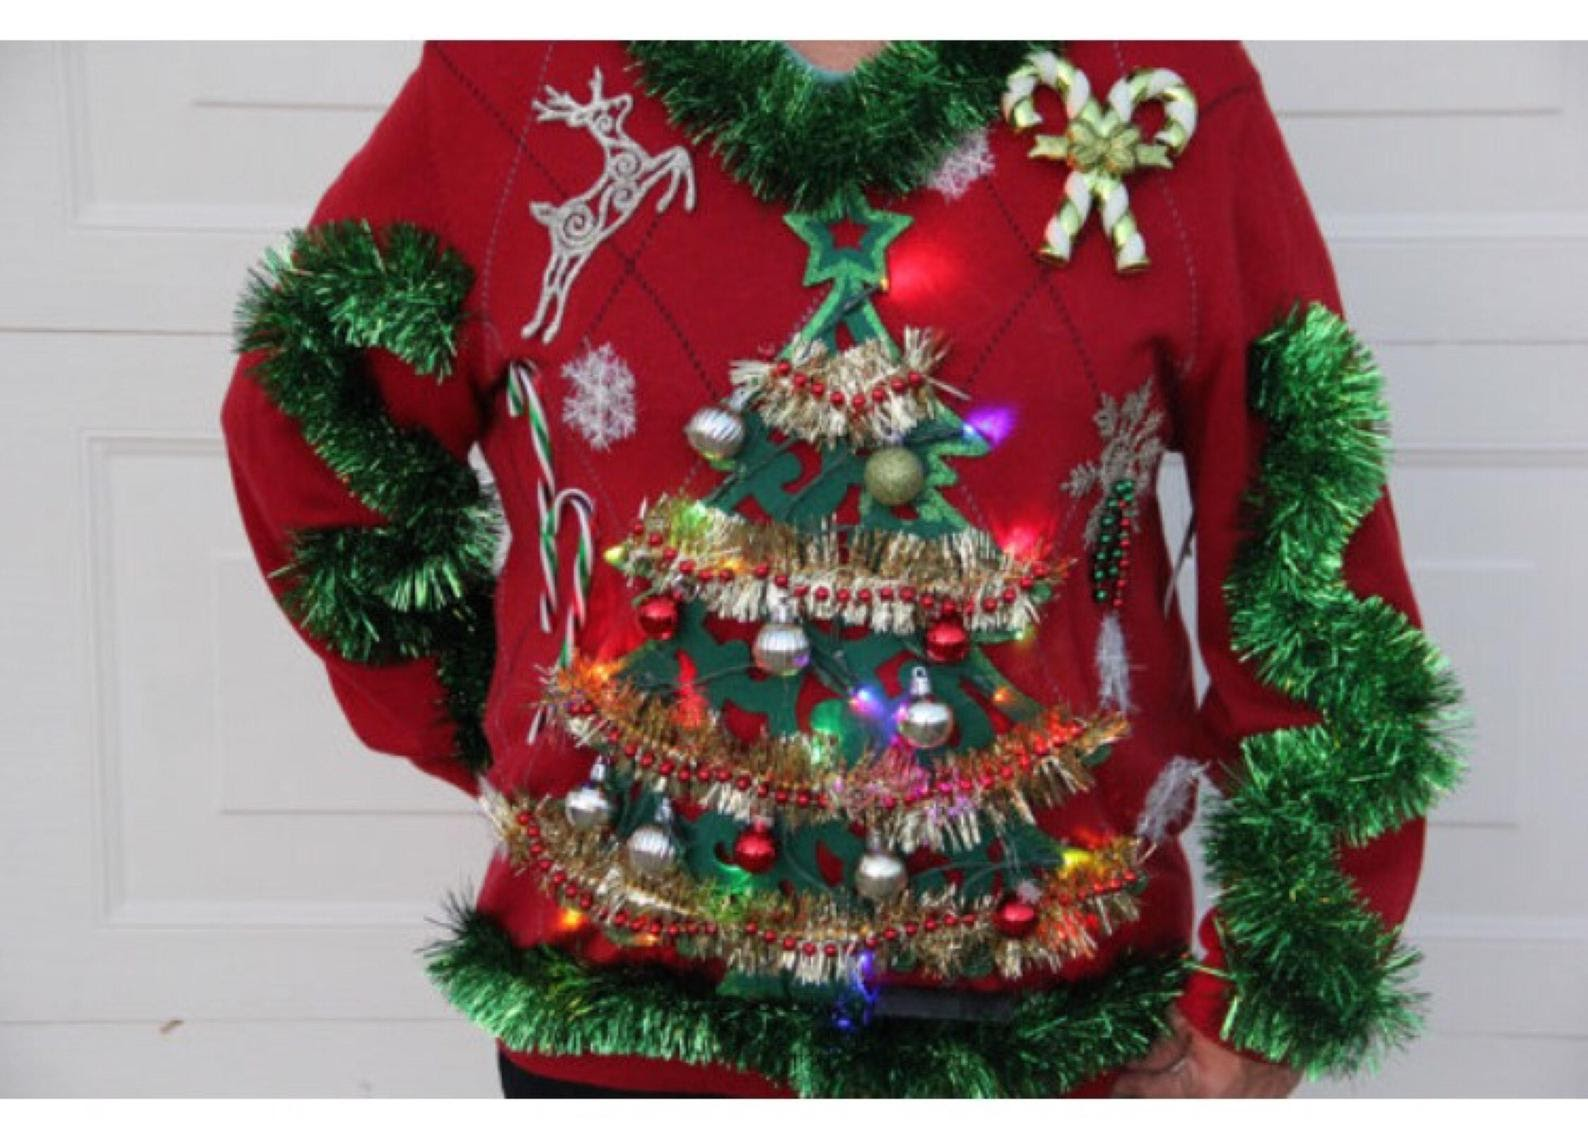 ugly sweater with Christmas tree and ornaments